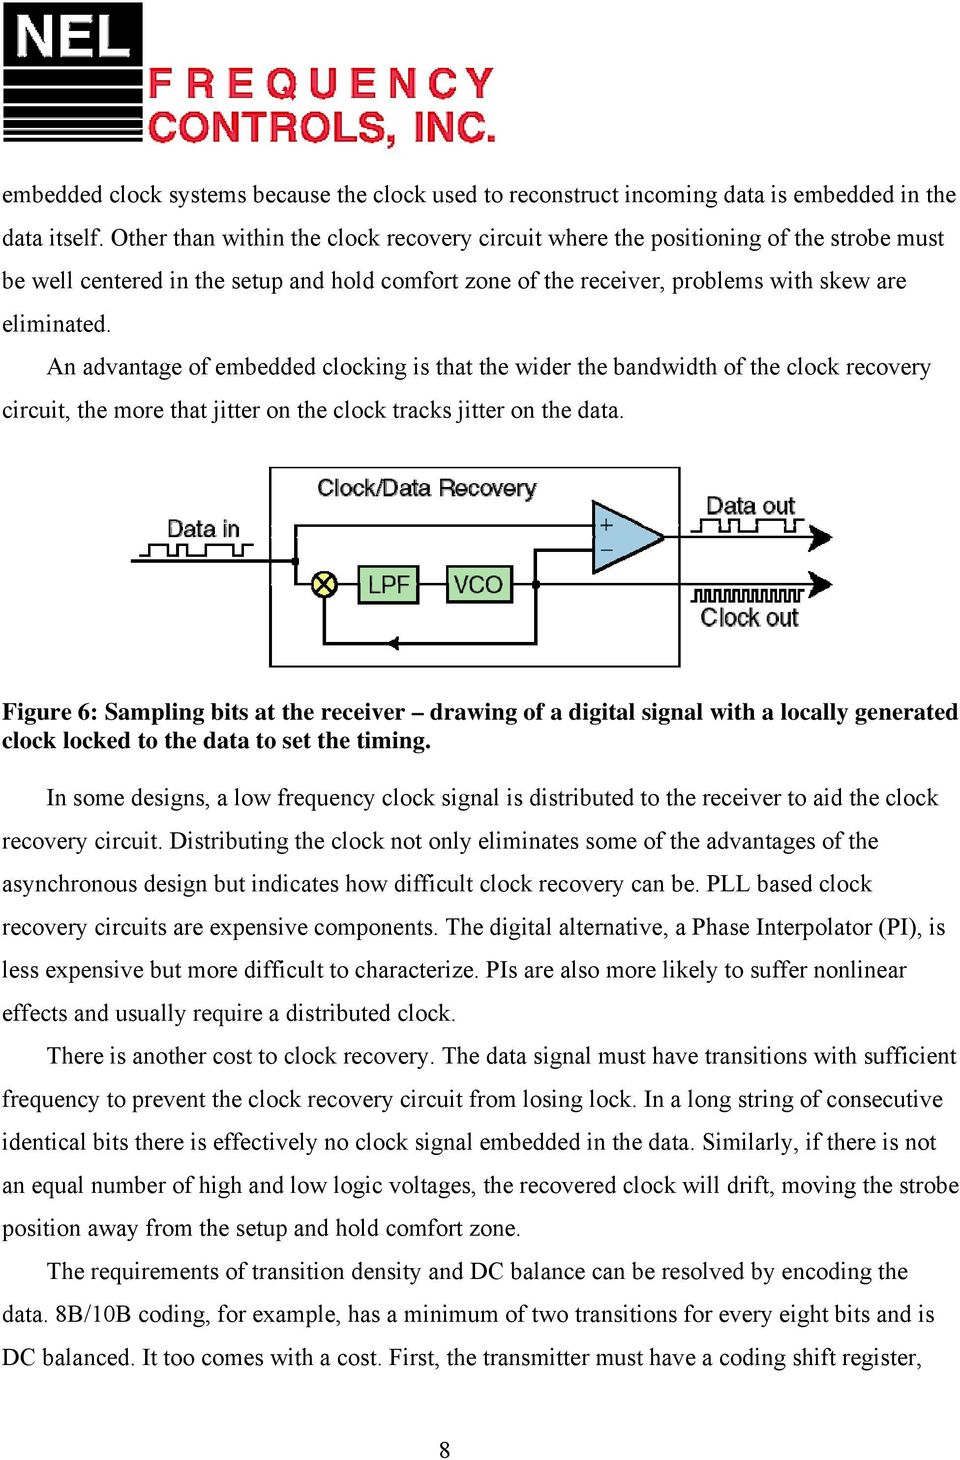 An advantage of embedded clocking is that the wider the bandwidth of the clock recovery circuit, the more that jitter on the clock tracks jitter on the data.